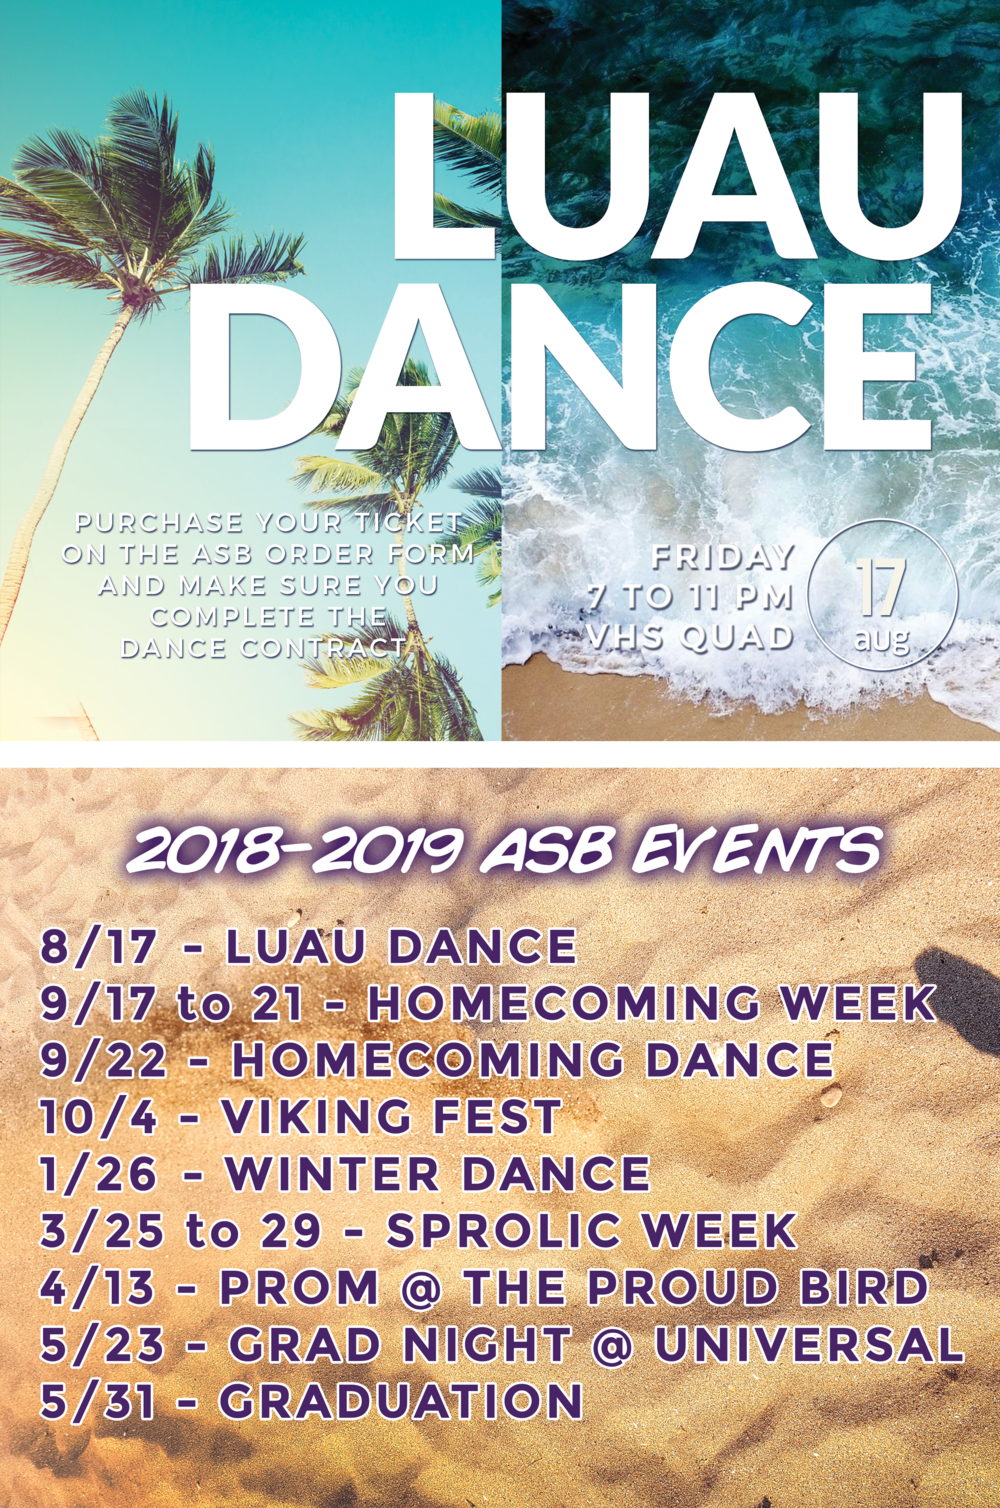 luau and dates flyer 2018.png